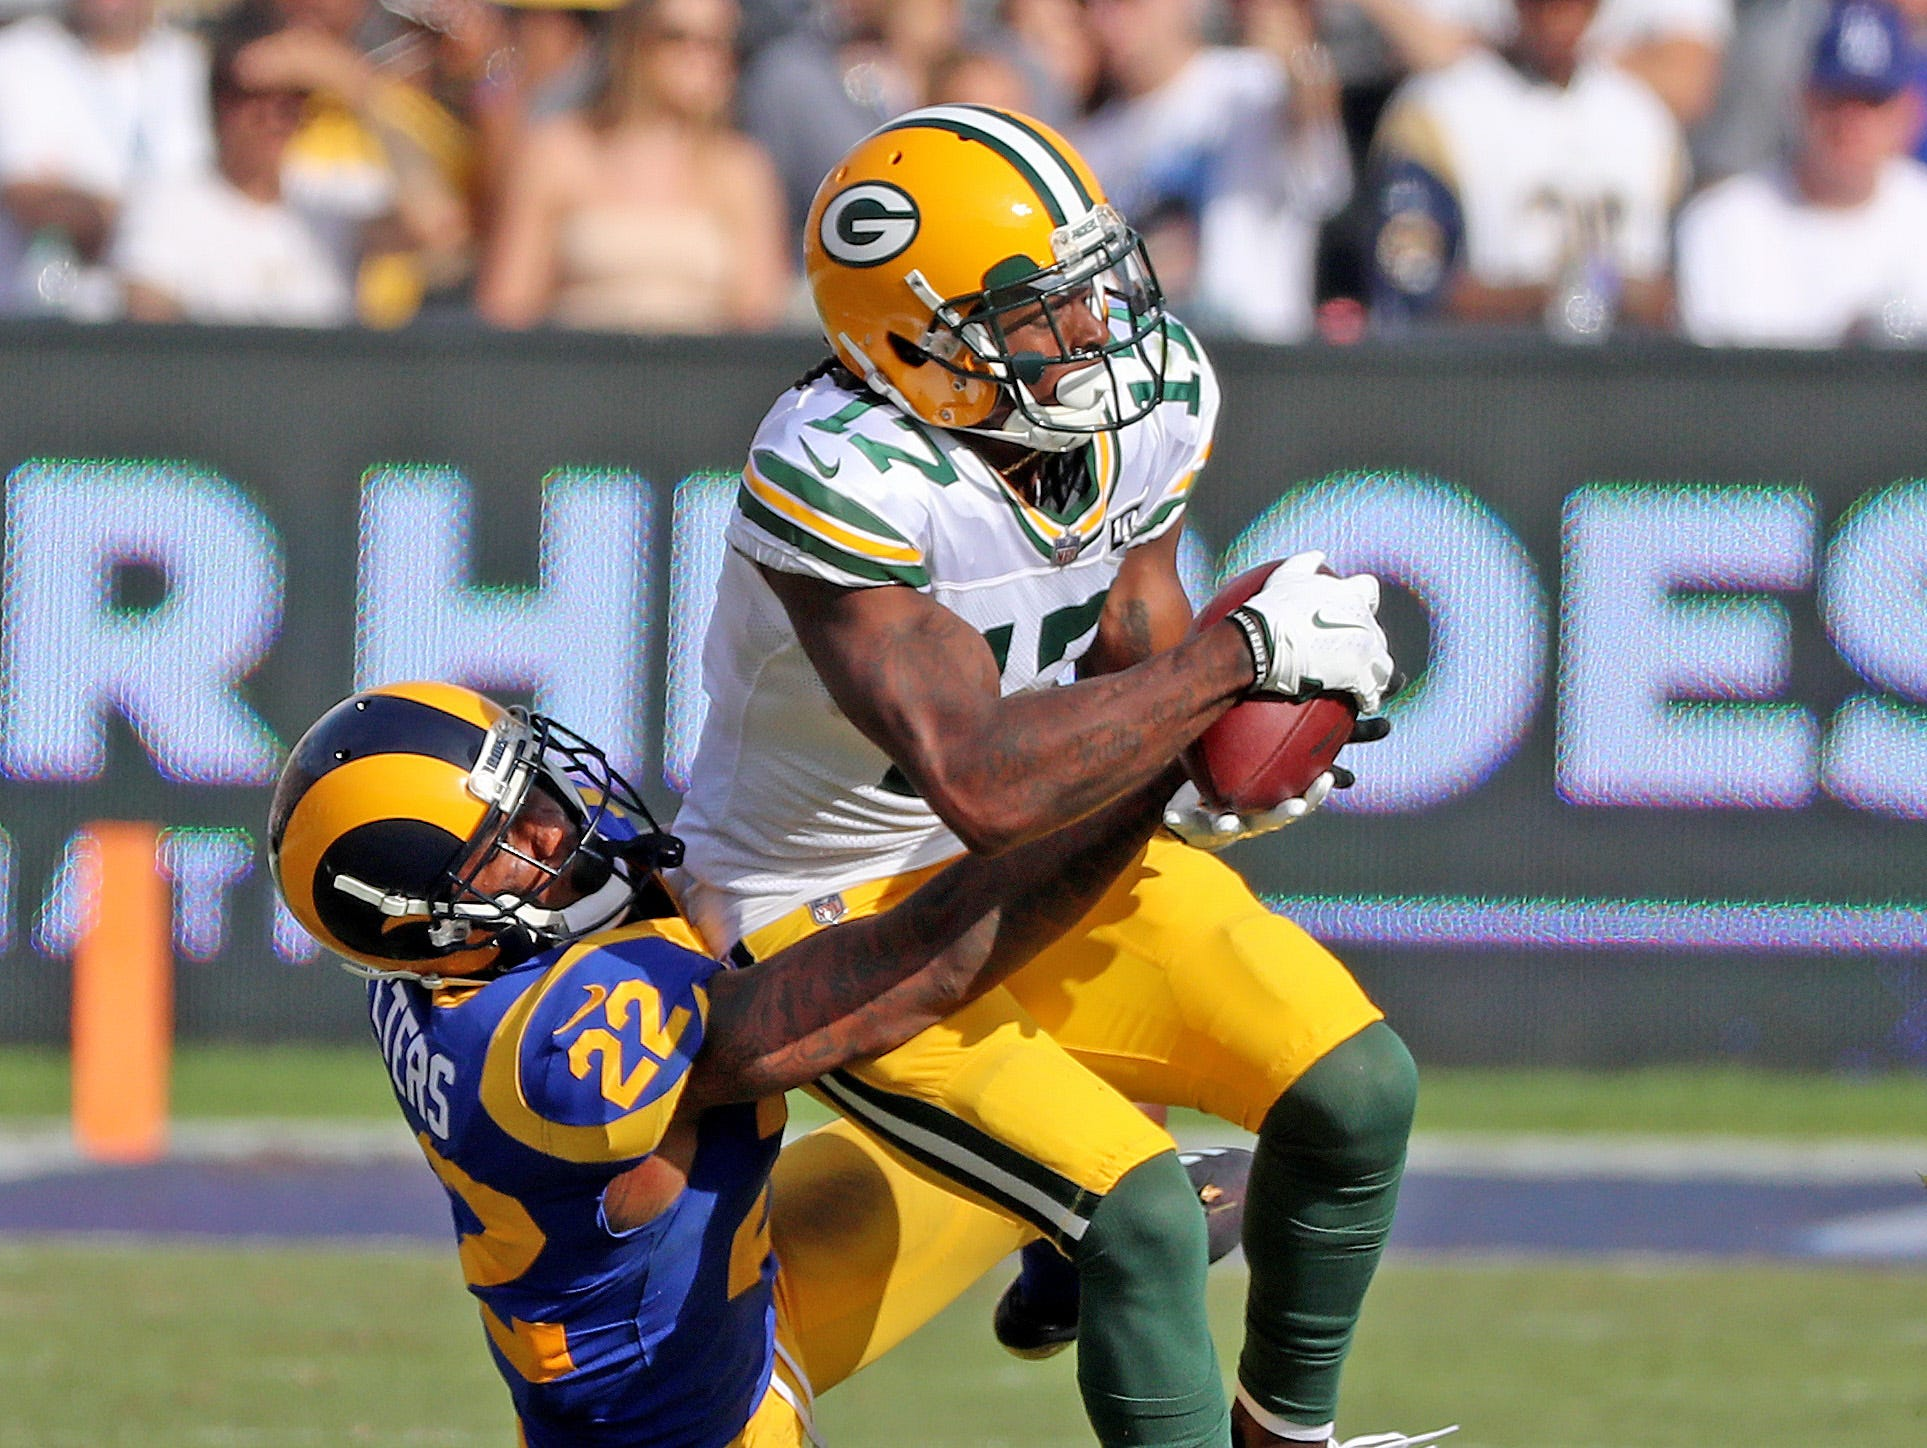 Green Bay Packers wide receiver Davante Adams (17) gets thrown down after a catch against cornerback Marcus Peters (22) of the LA Rams Sunday, October 28, 2018 at the Memorial Coliseum in Los Angeles.